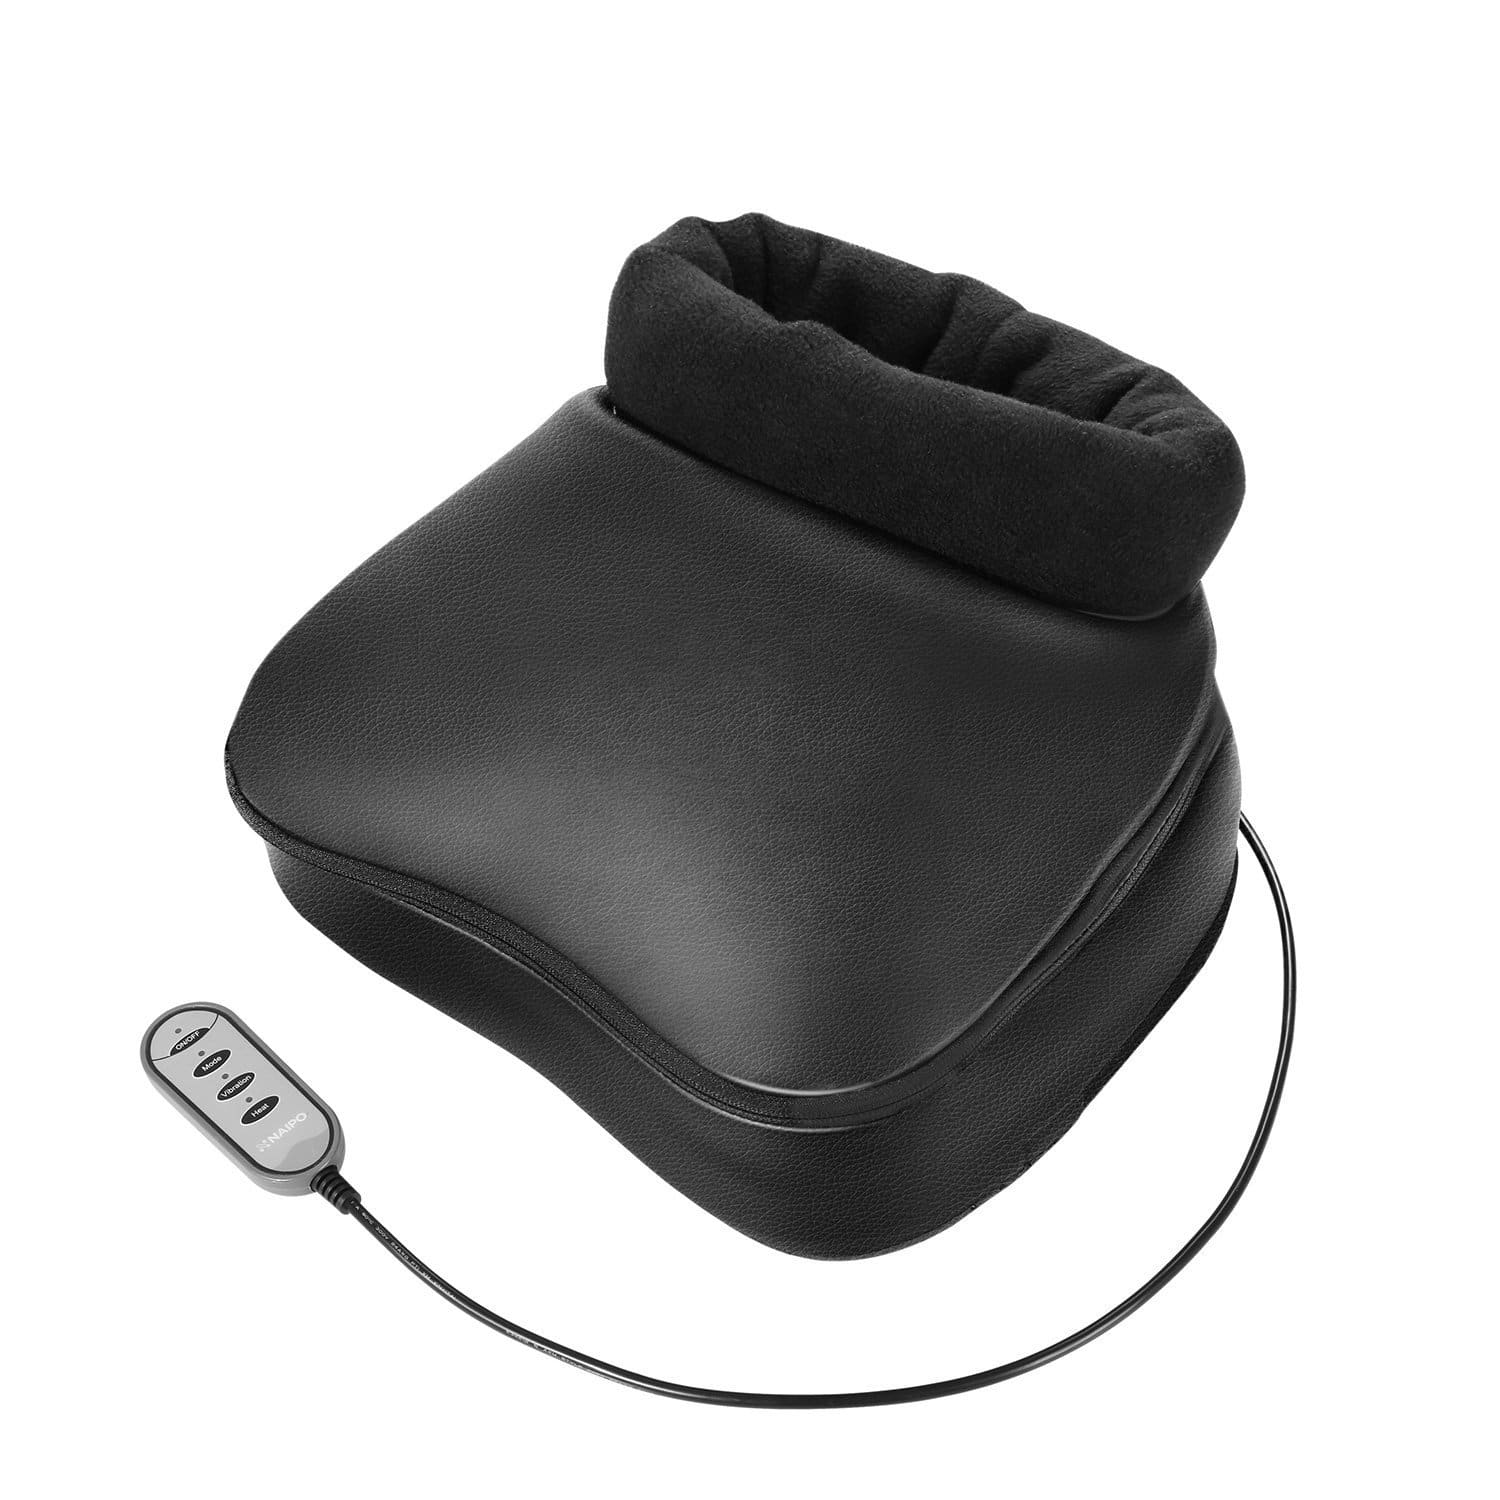 FOOT & BACK MASSAGER WITH HEAT, SHIATSU, DEEP KNEADING AND VIBRATION.